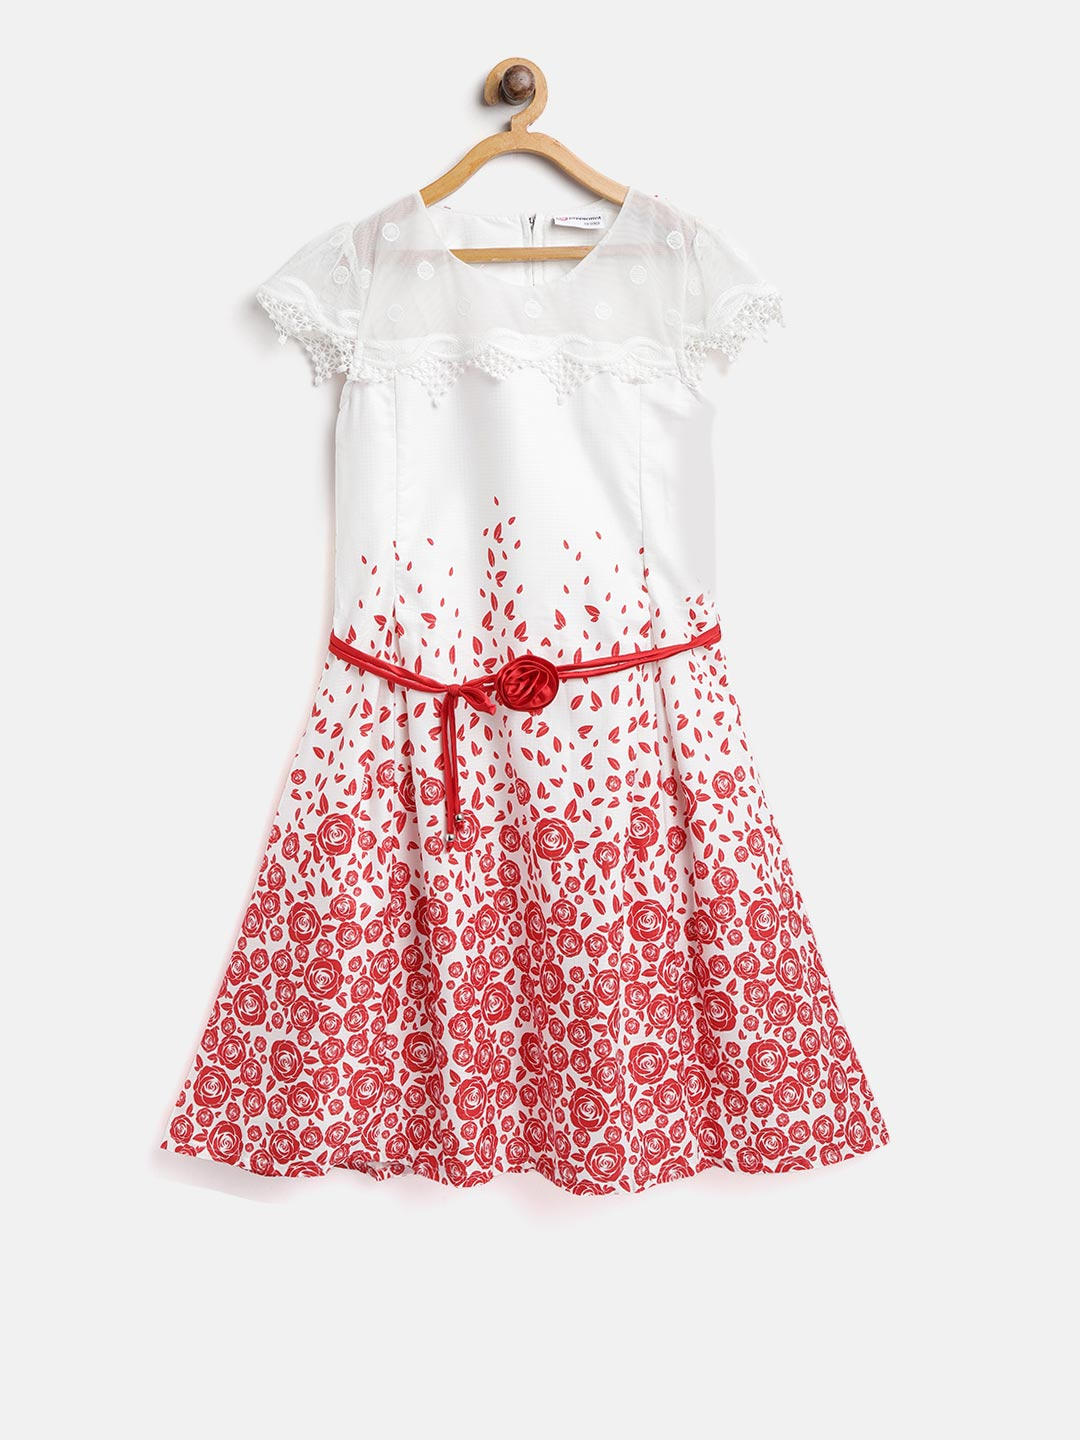 Birthday Dress For Baby Girl Online Shopping Philippines